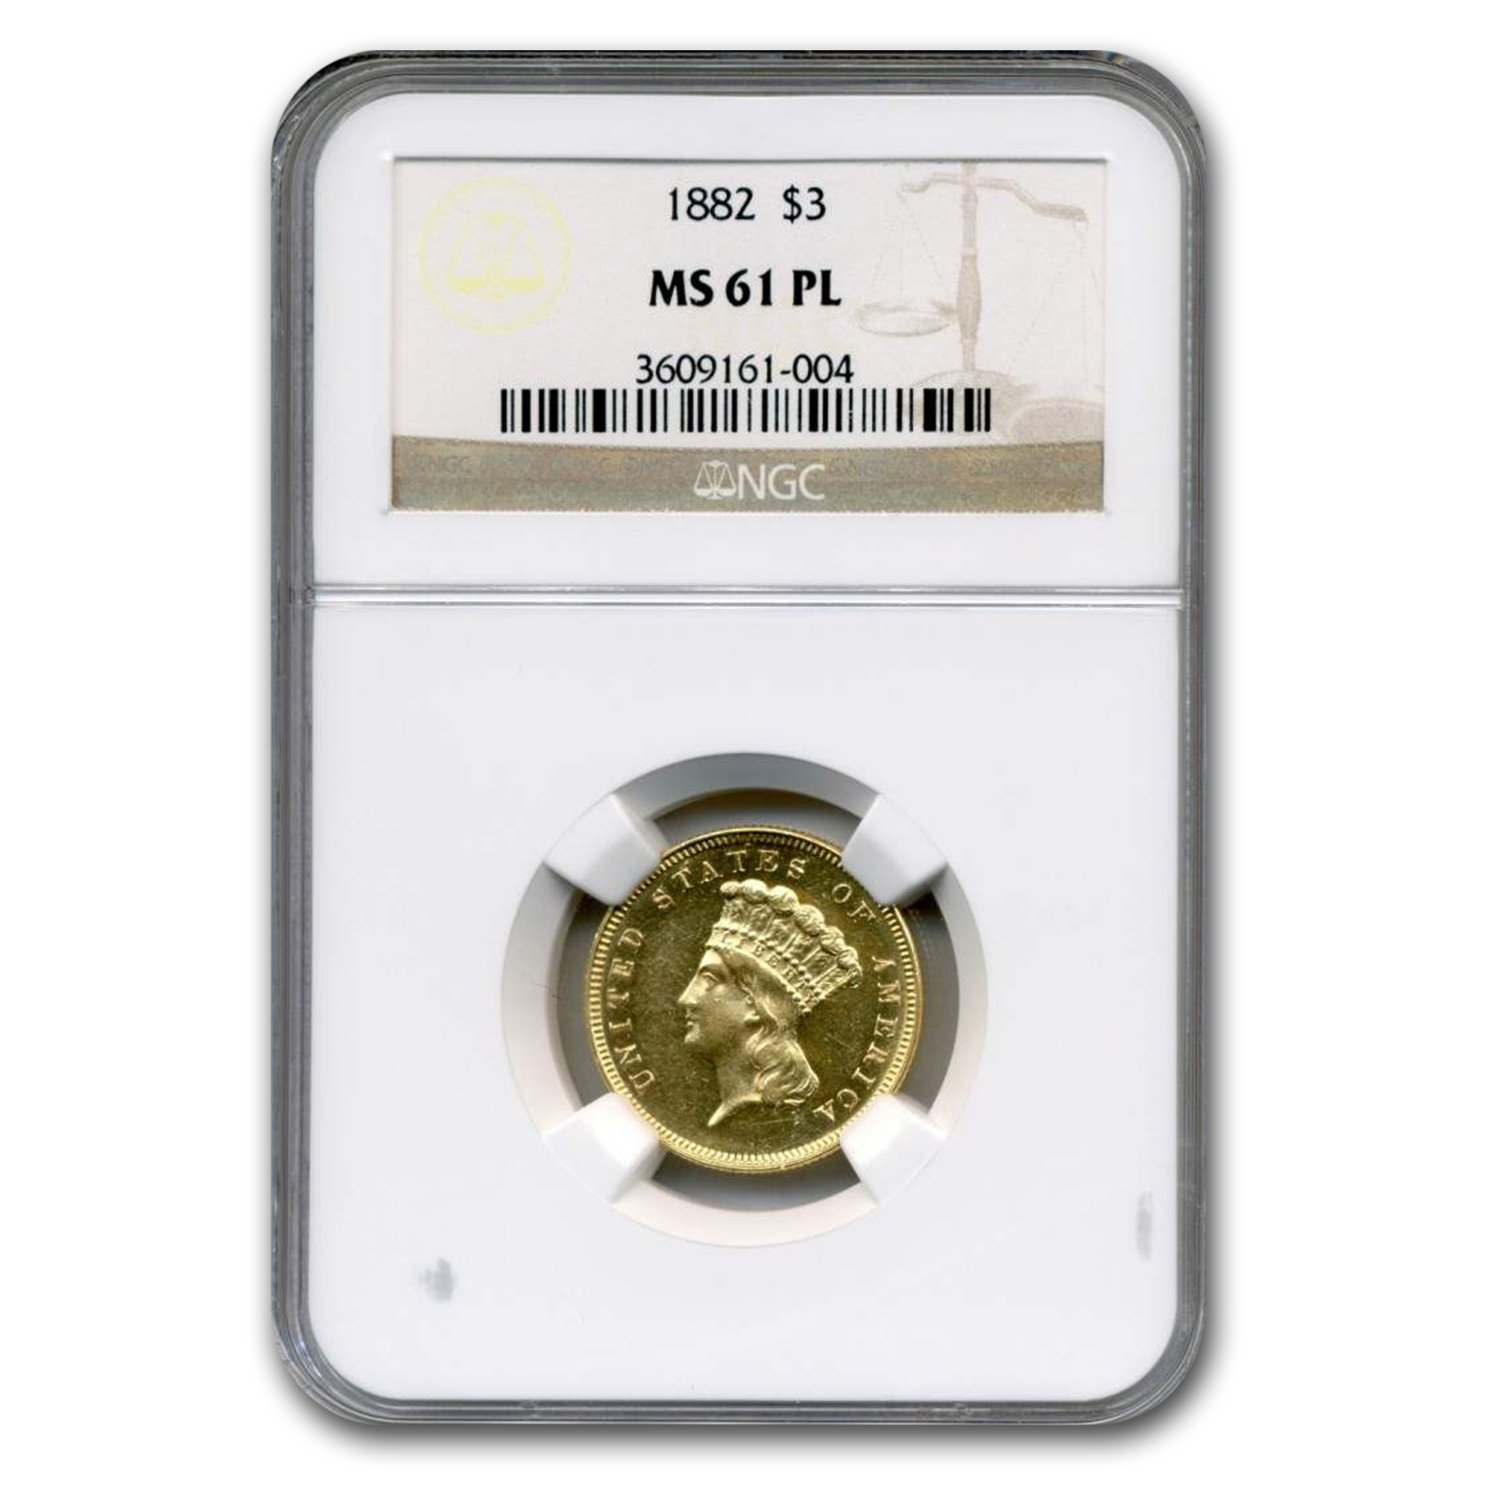 1882 Gold $3 Princess MS-61 NGC (PL)